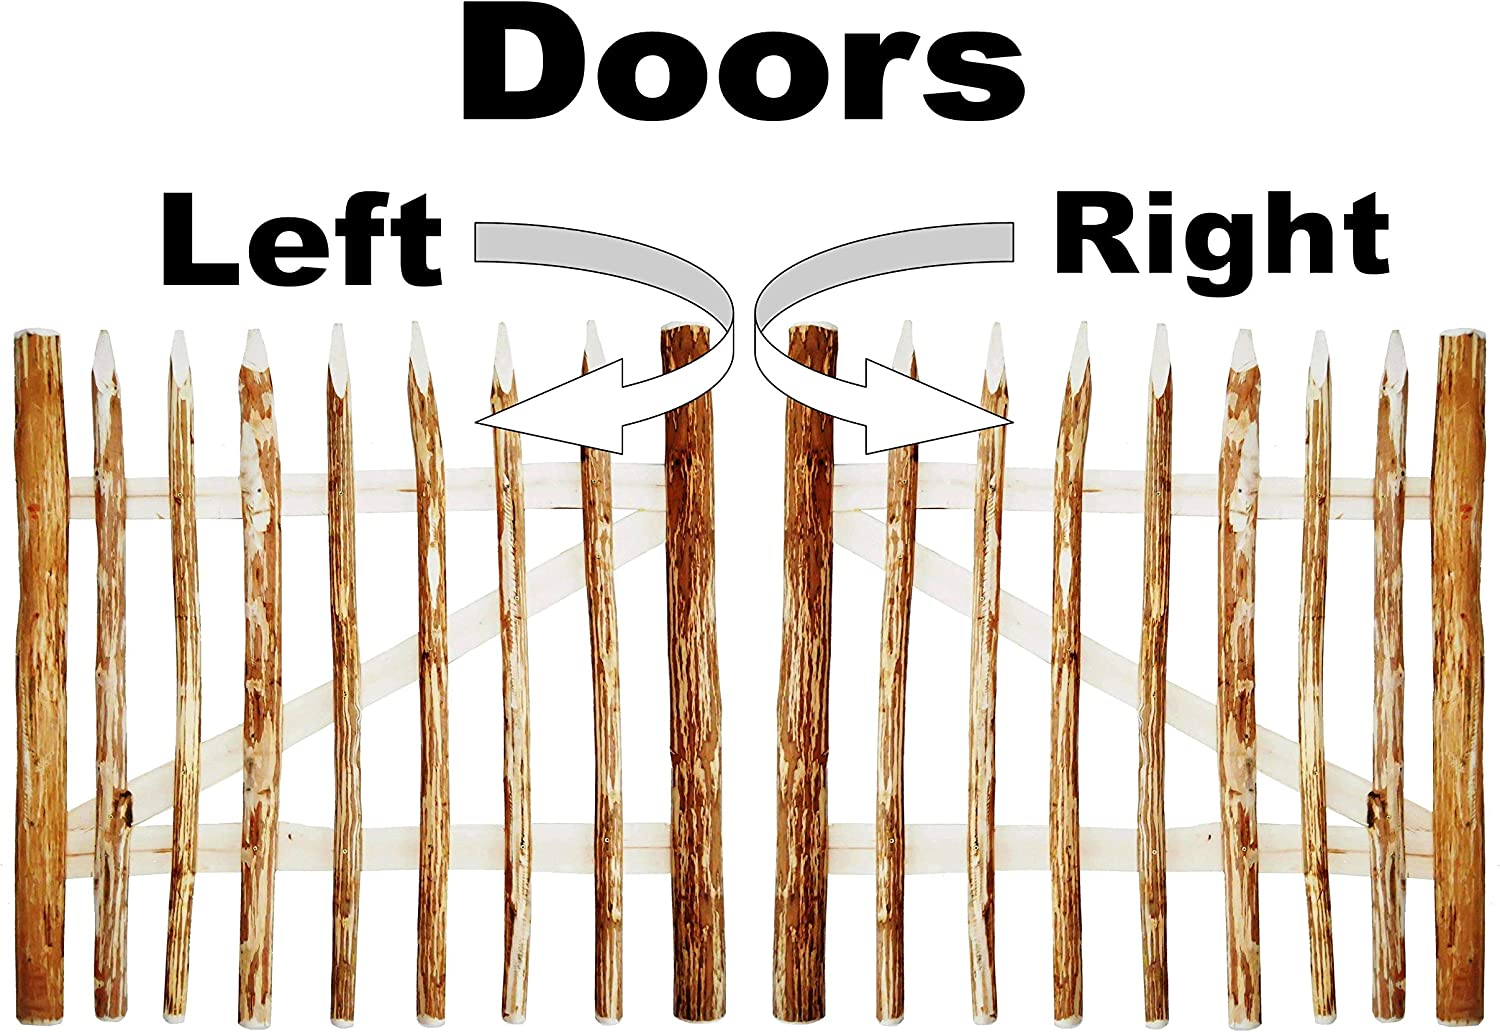 Height 80 cm Door Opening to the Right Distance between Fence Pickets 6-7 cm BOGATECO 2.6 ft Tall Wooden Garden Farm Gate Width: 100cm Includes Hinges /& Accessories